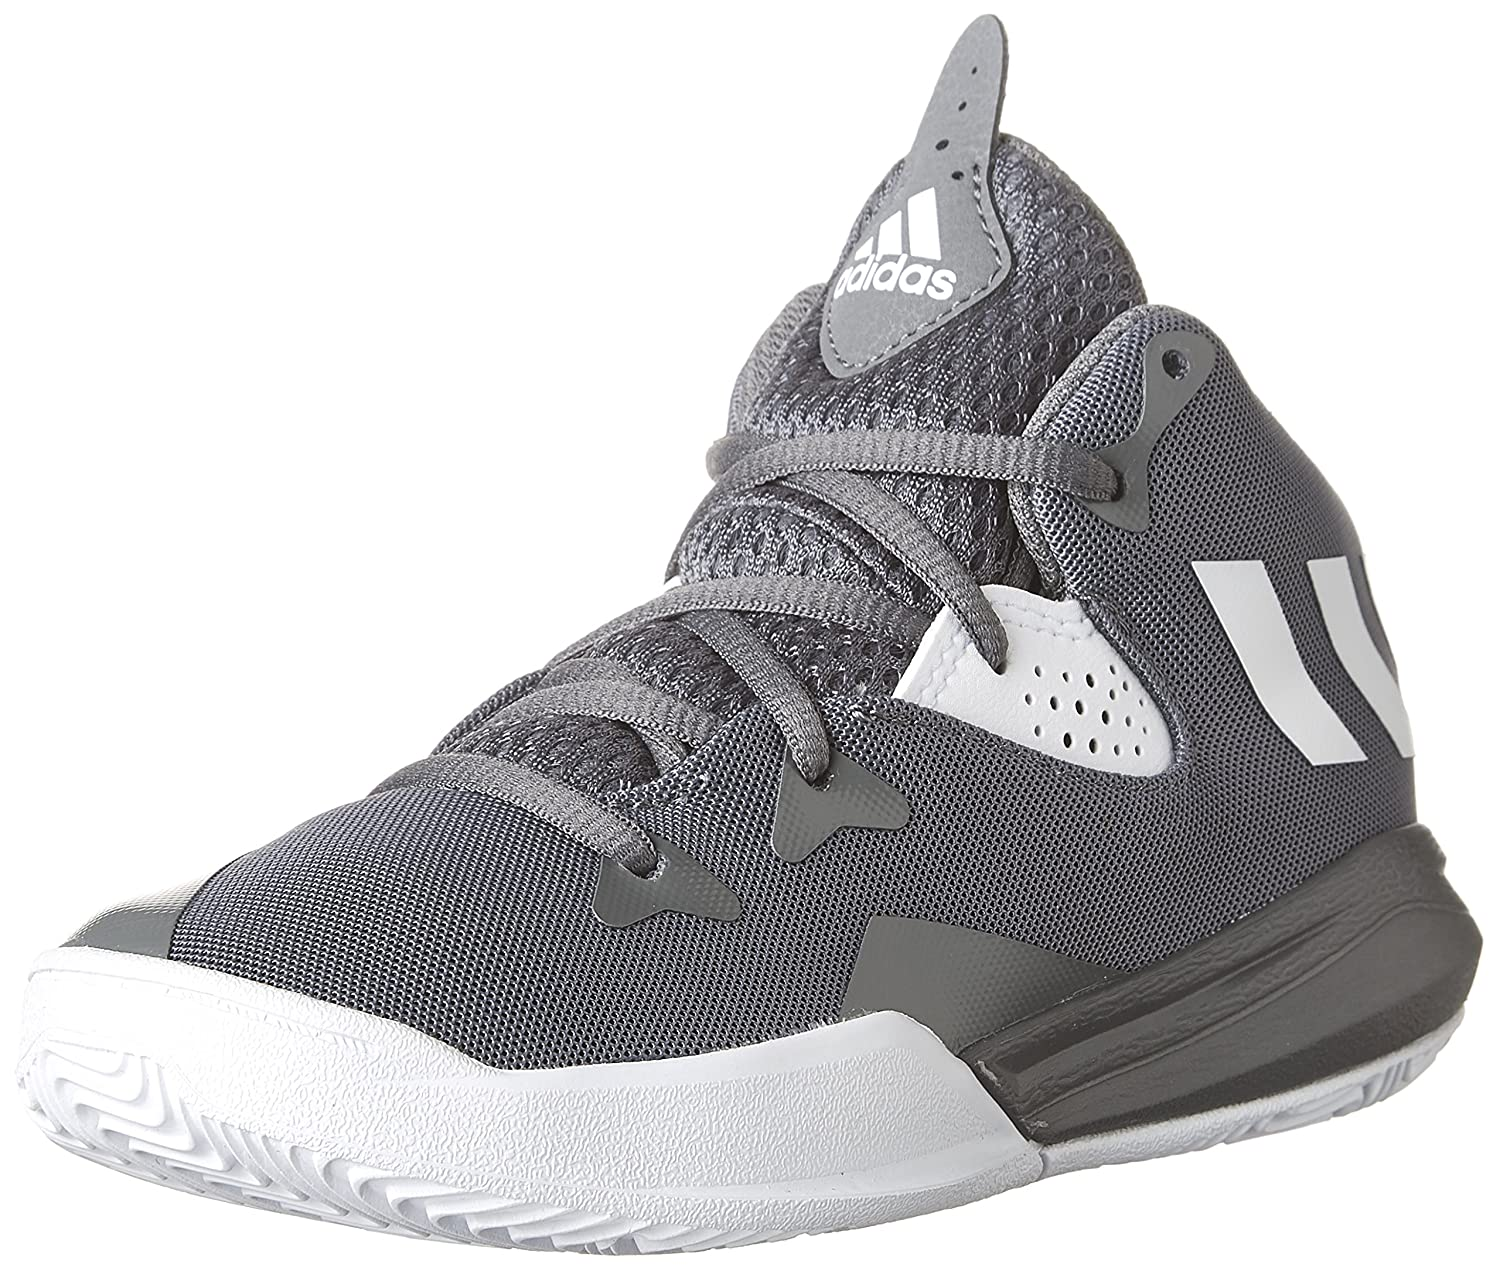 adidas Kids' Dual Threat 2017 Basketball Shoes BY4443